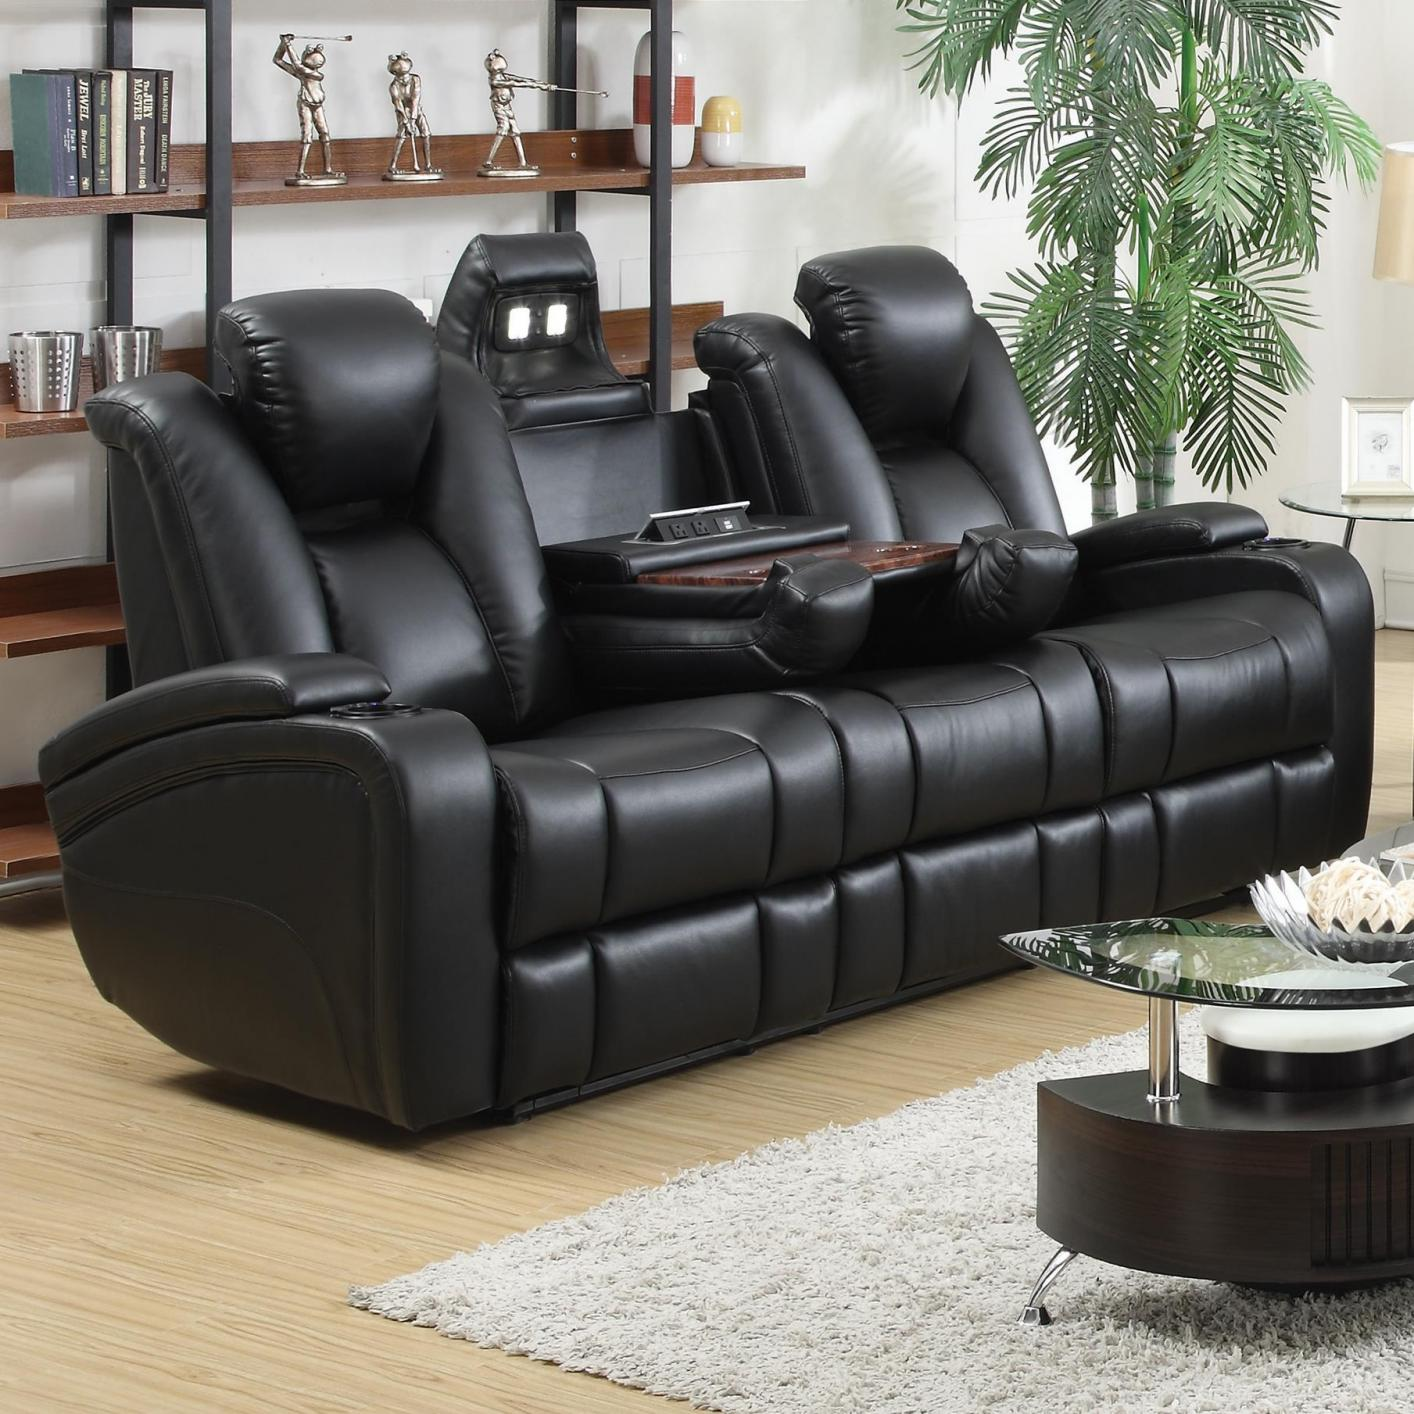 601741p black leather power reclining sofa steal a sofa furniture